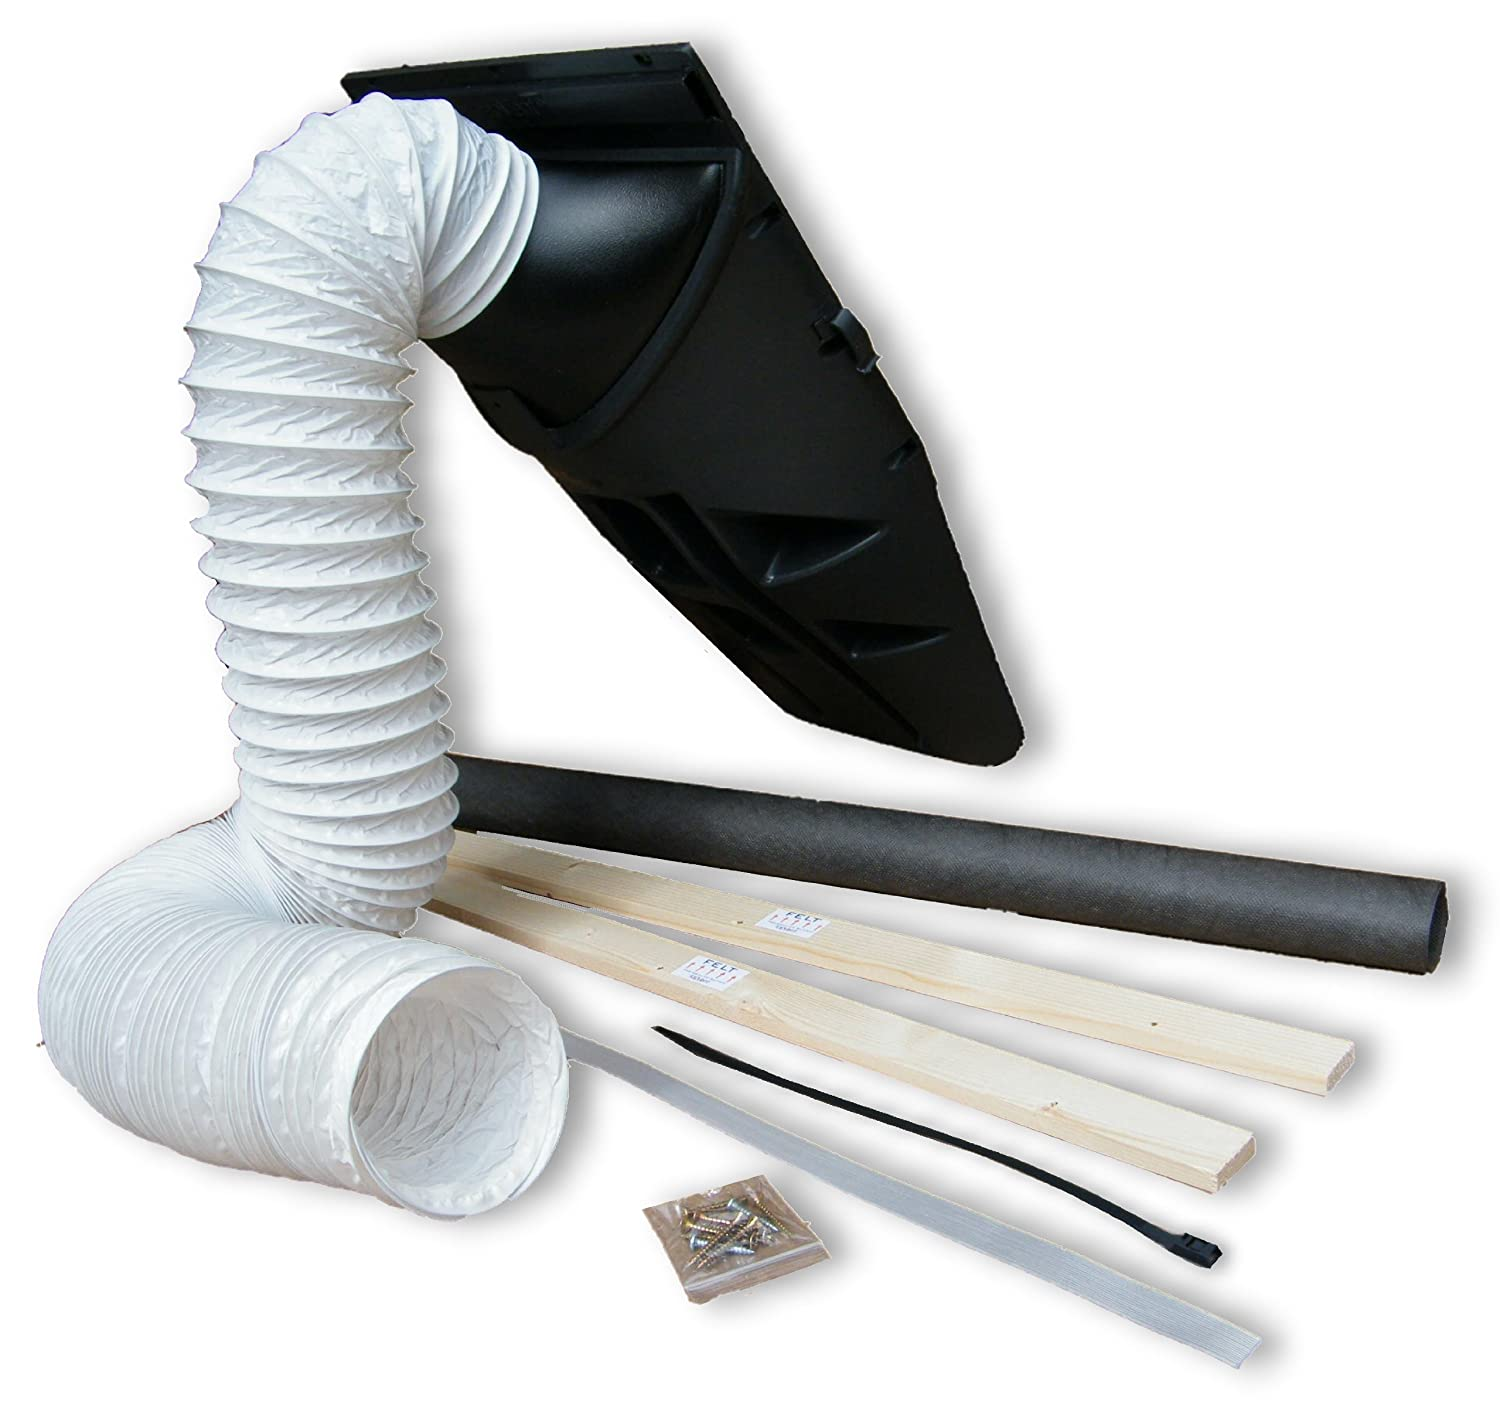 How to fit bathroom extractor fans - Diy Fit Extractor Fan Roof Vent To Vent From A Bathroom Or Ensuite No Need To Get On The Roof Or Remove A Roof Tile With Lapvent Fitted From The Loft